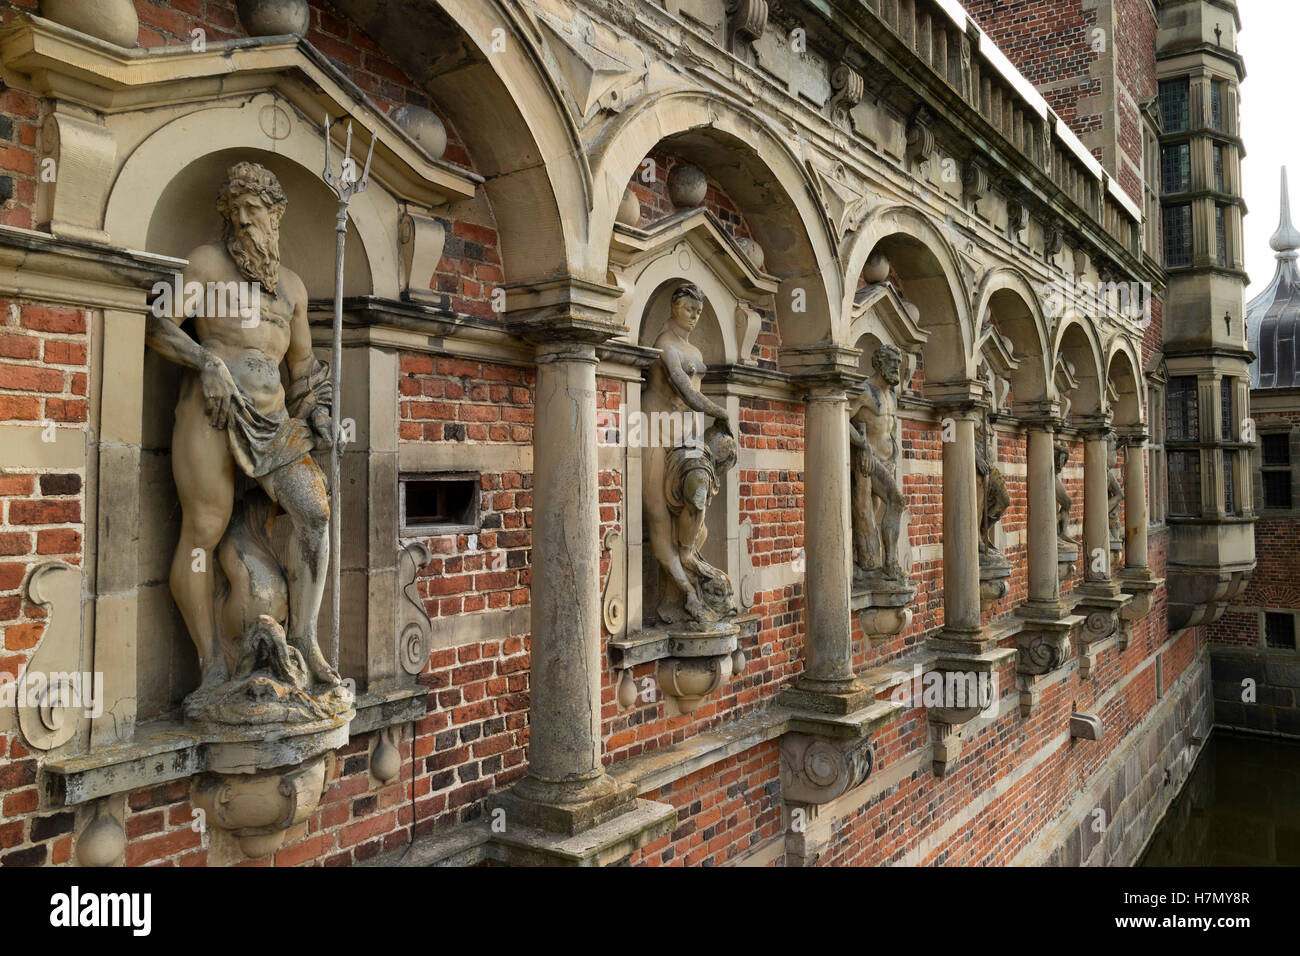 Sculptures at the Frederiksborg Castle in Hillerod, Denmark - Stock Image